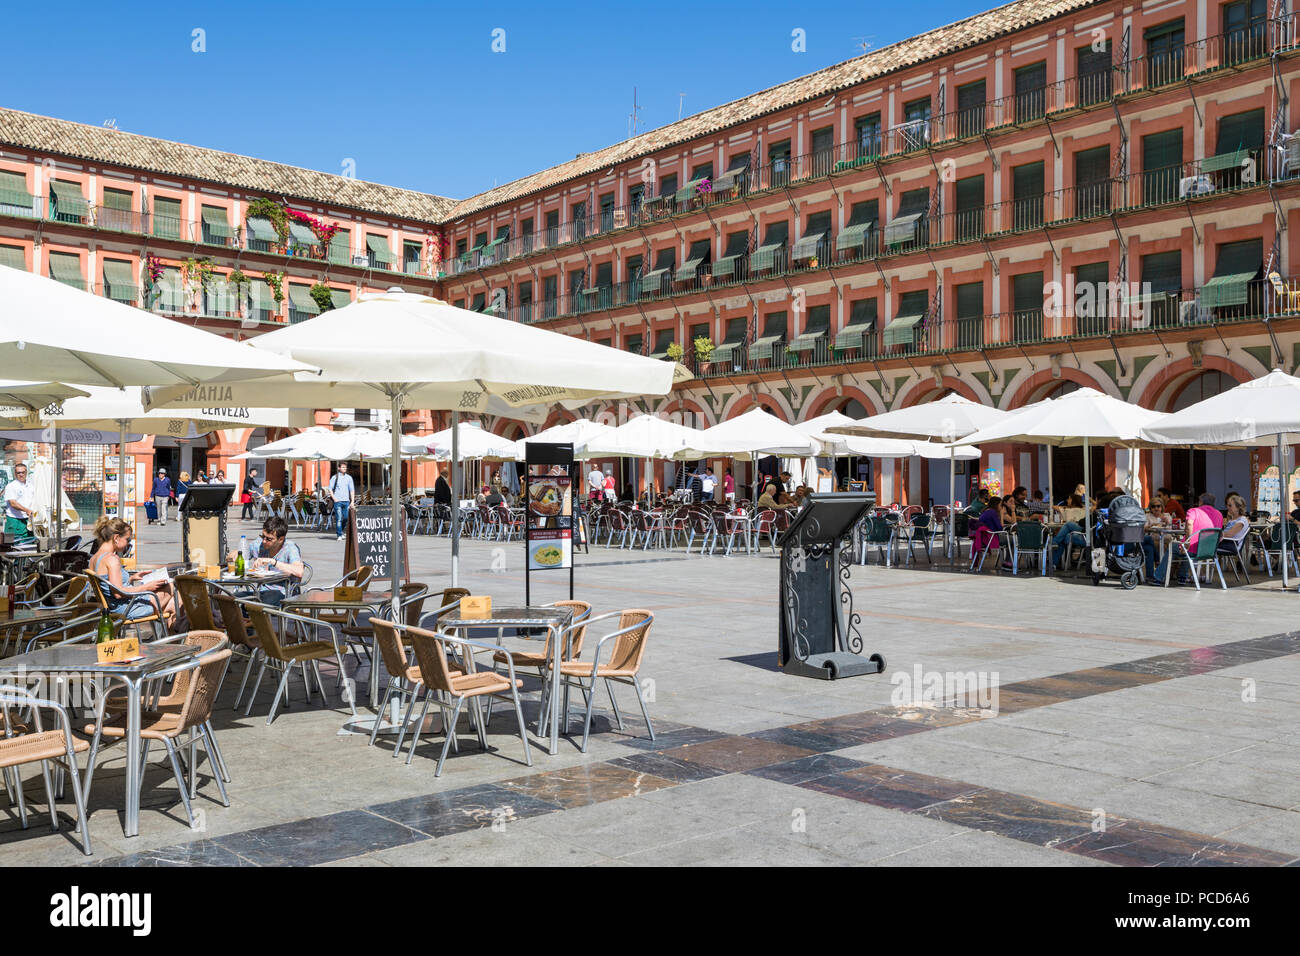 Cafés et restaurants de la Plaza de la Corredera, Cordoba, Andalousie, Espagne, Europe Photo Stock